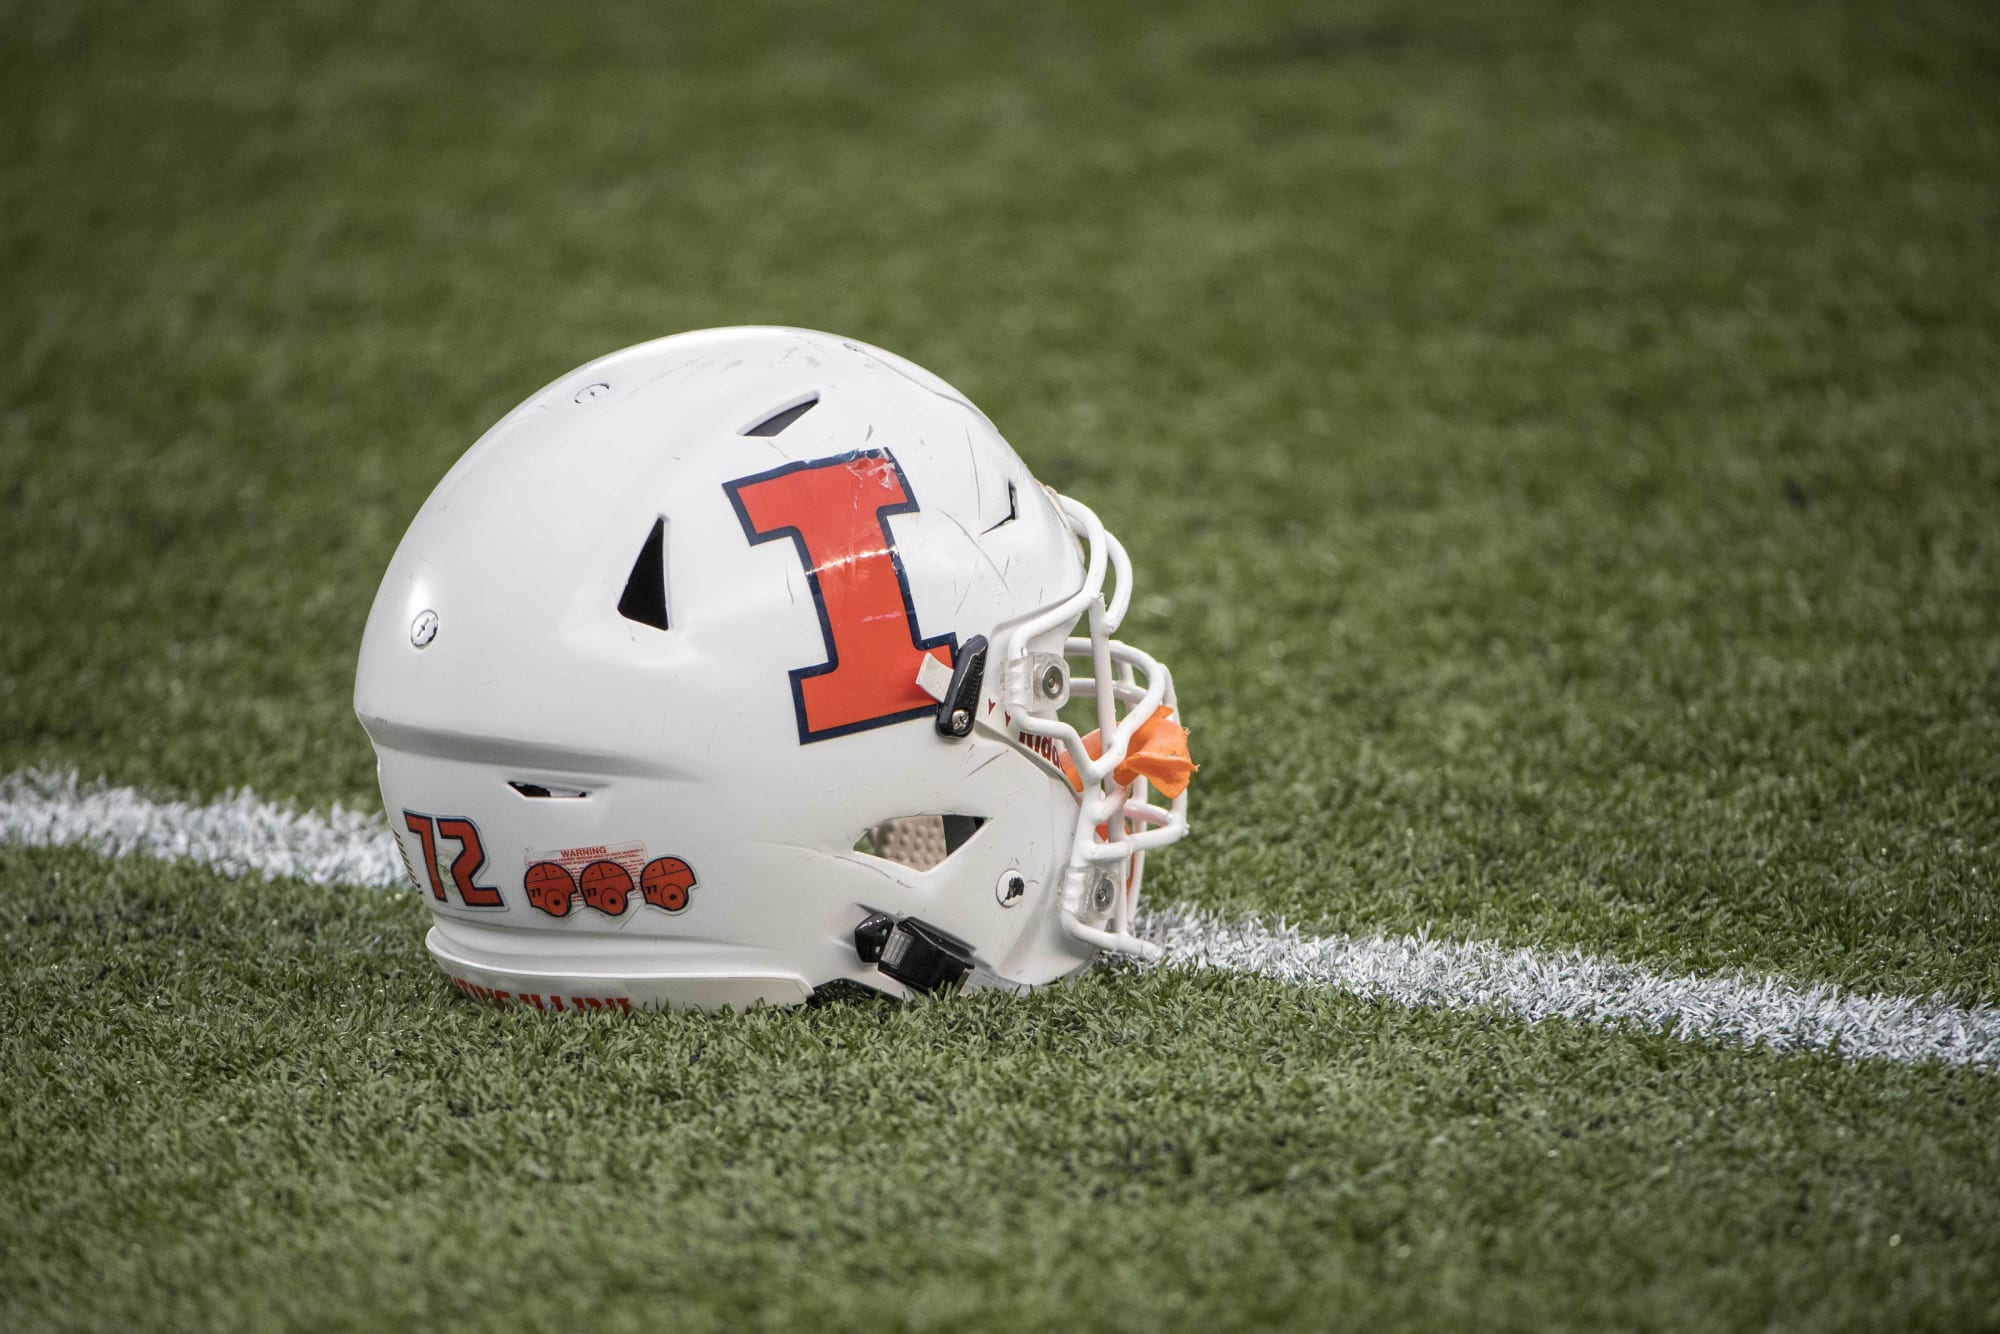 Illinois Football: St. Louis wide receiver receives Illini offer